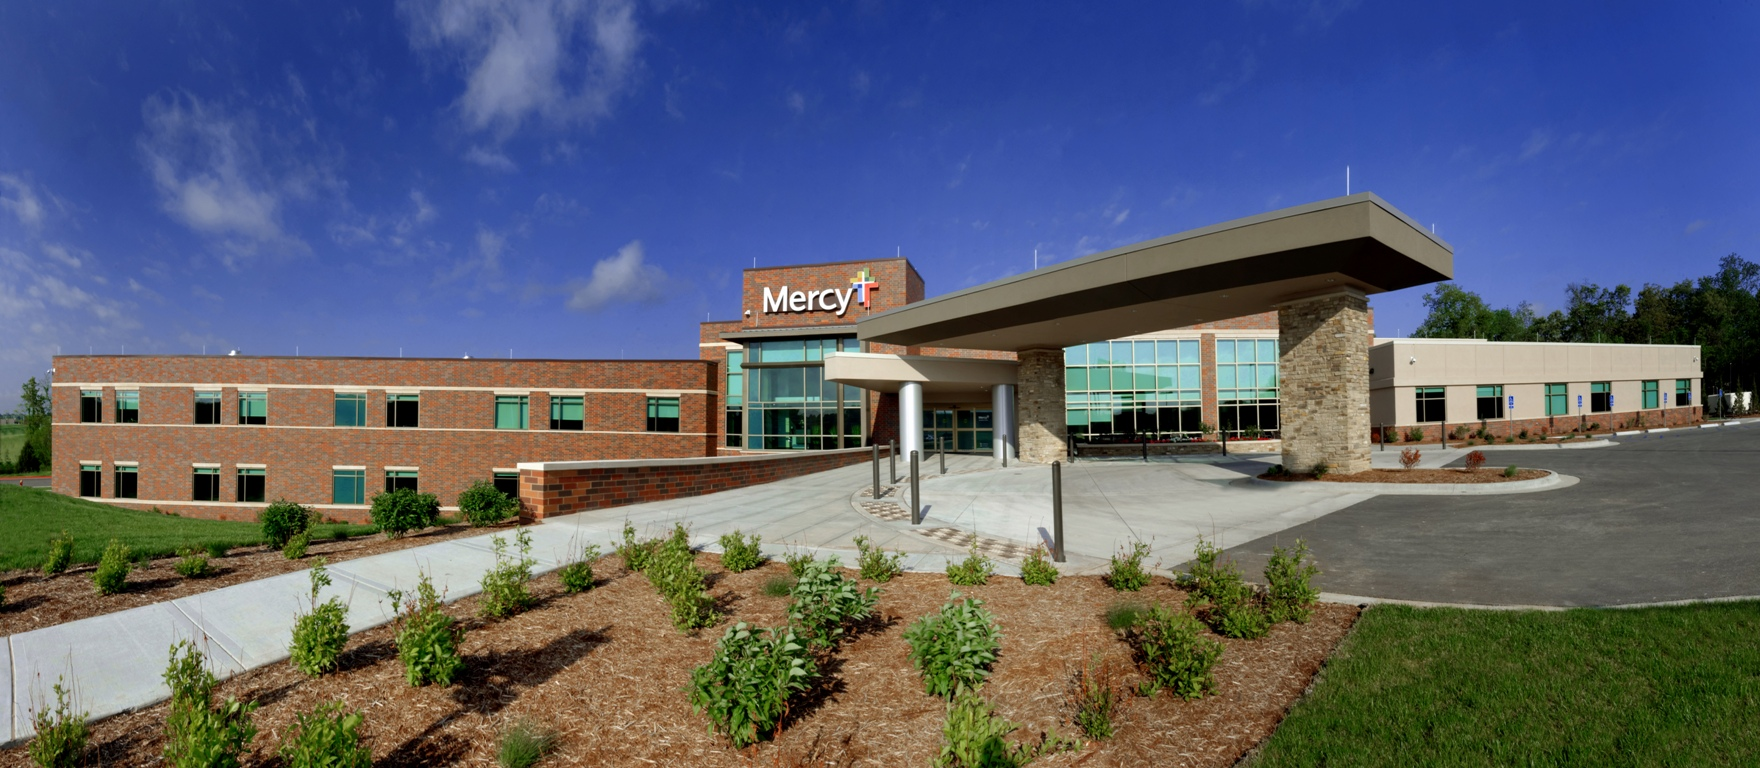 Duke Realty Donates Stained Glass Windows To Mercy Rehab